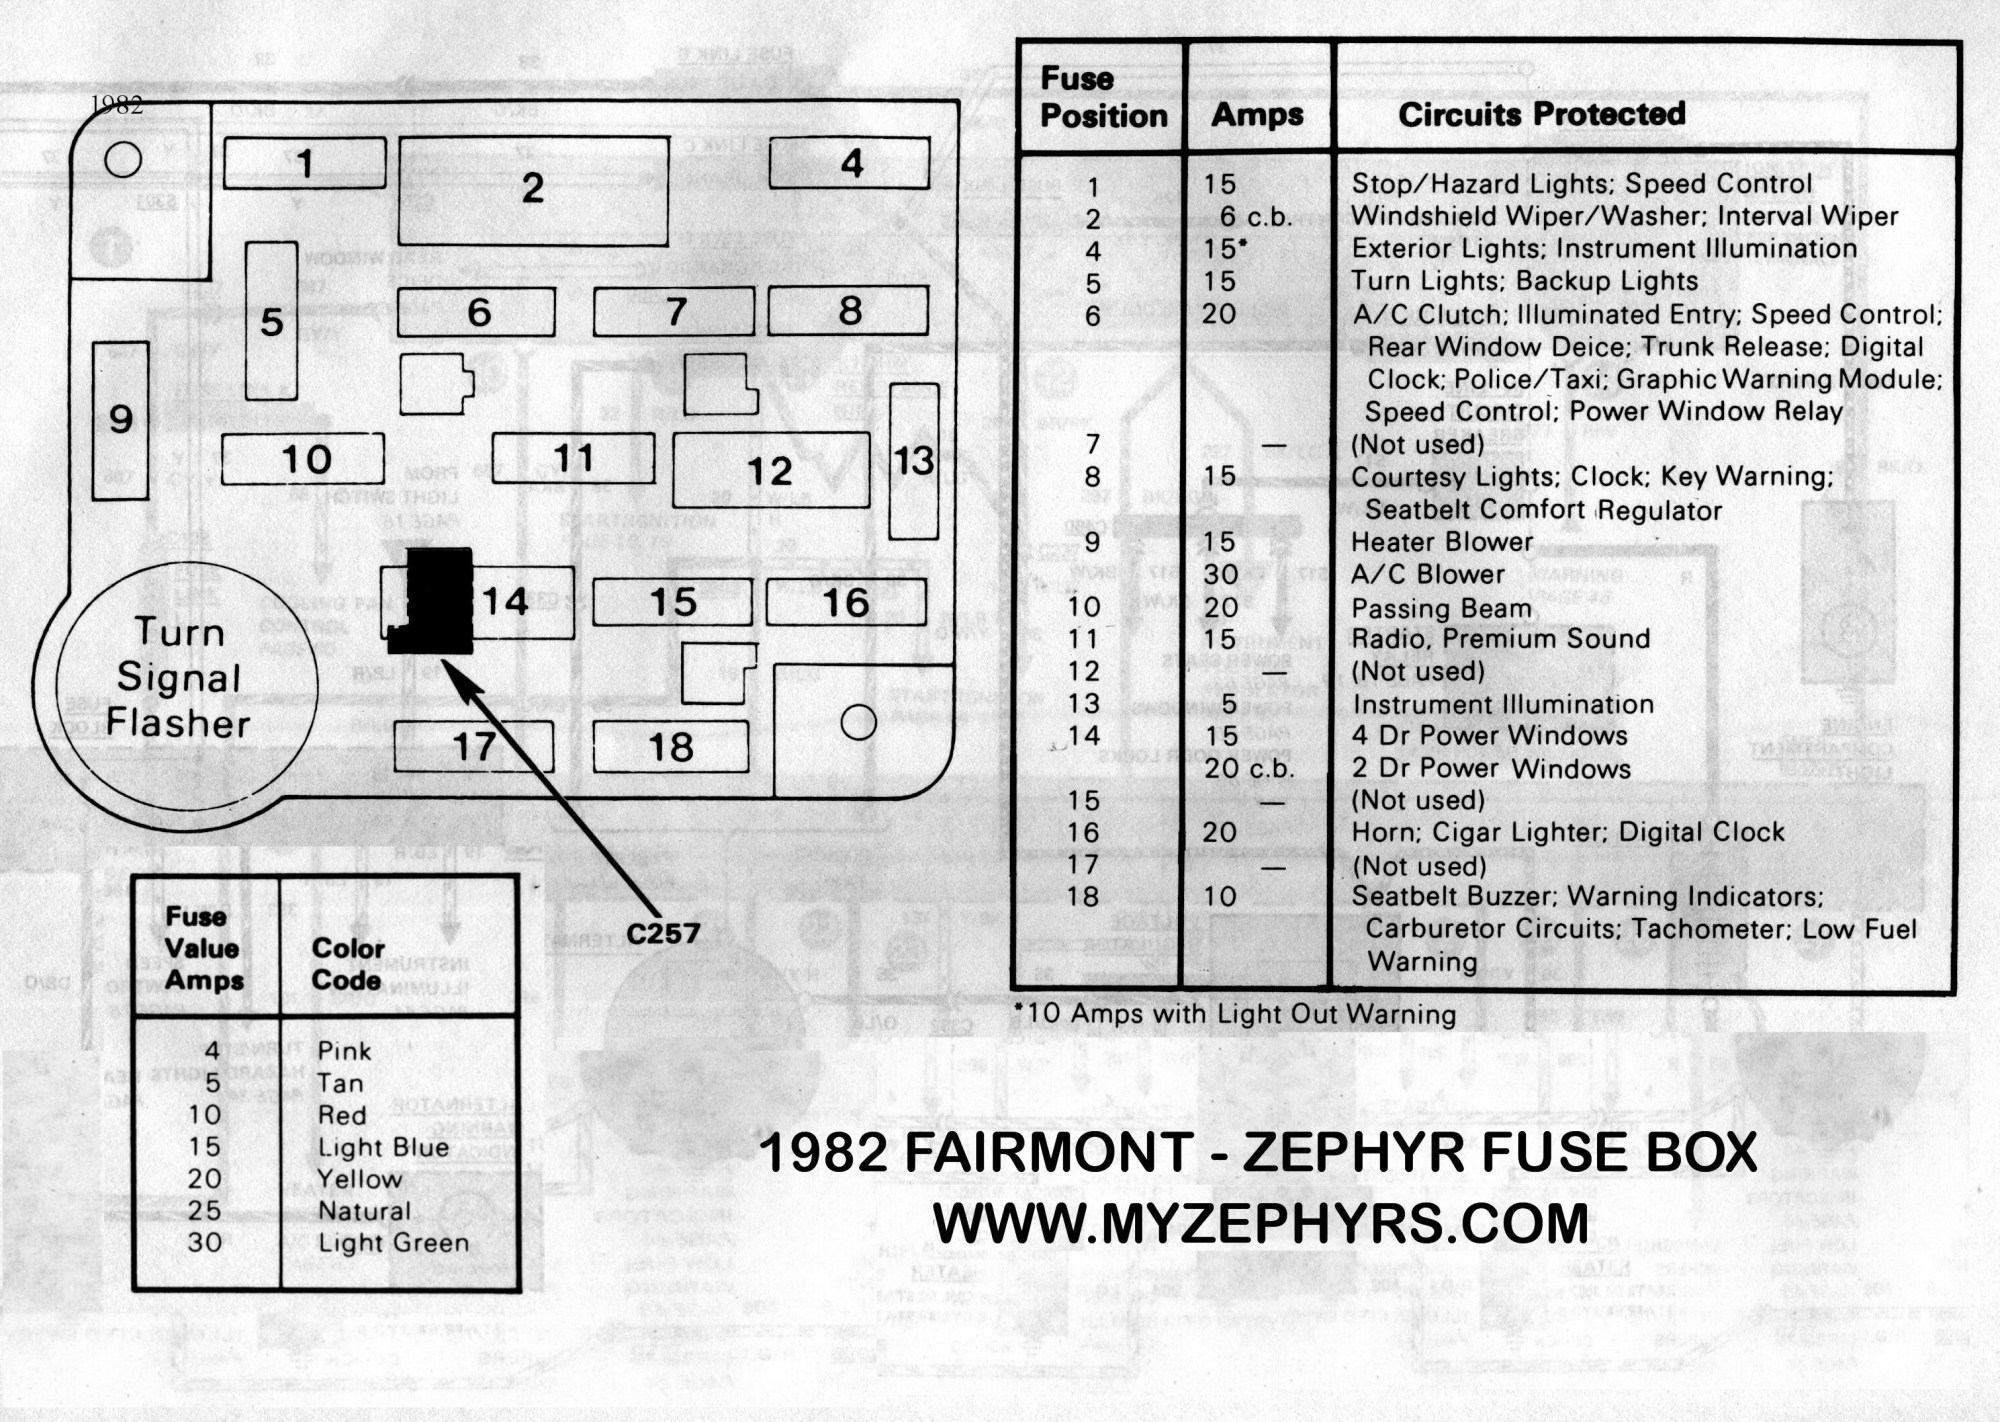 hight resolution of 90 mustang fuse box diagram introduction to electrical wiring 1991 mustang fuse panel diagram 1990 mustang